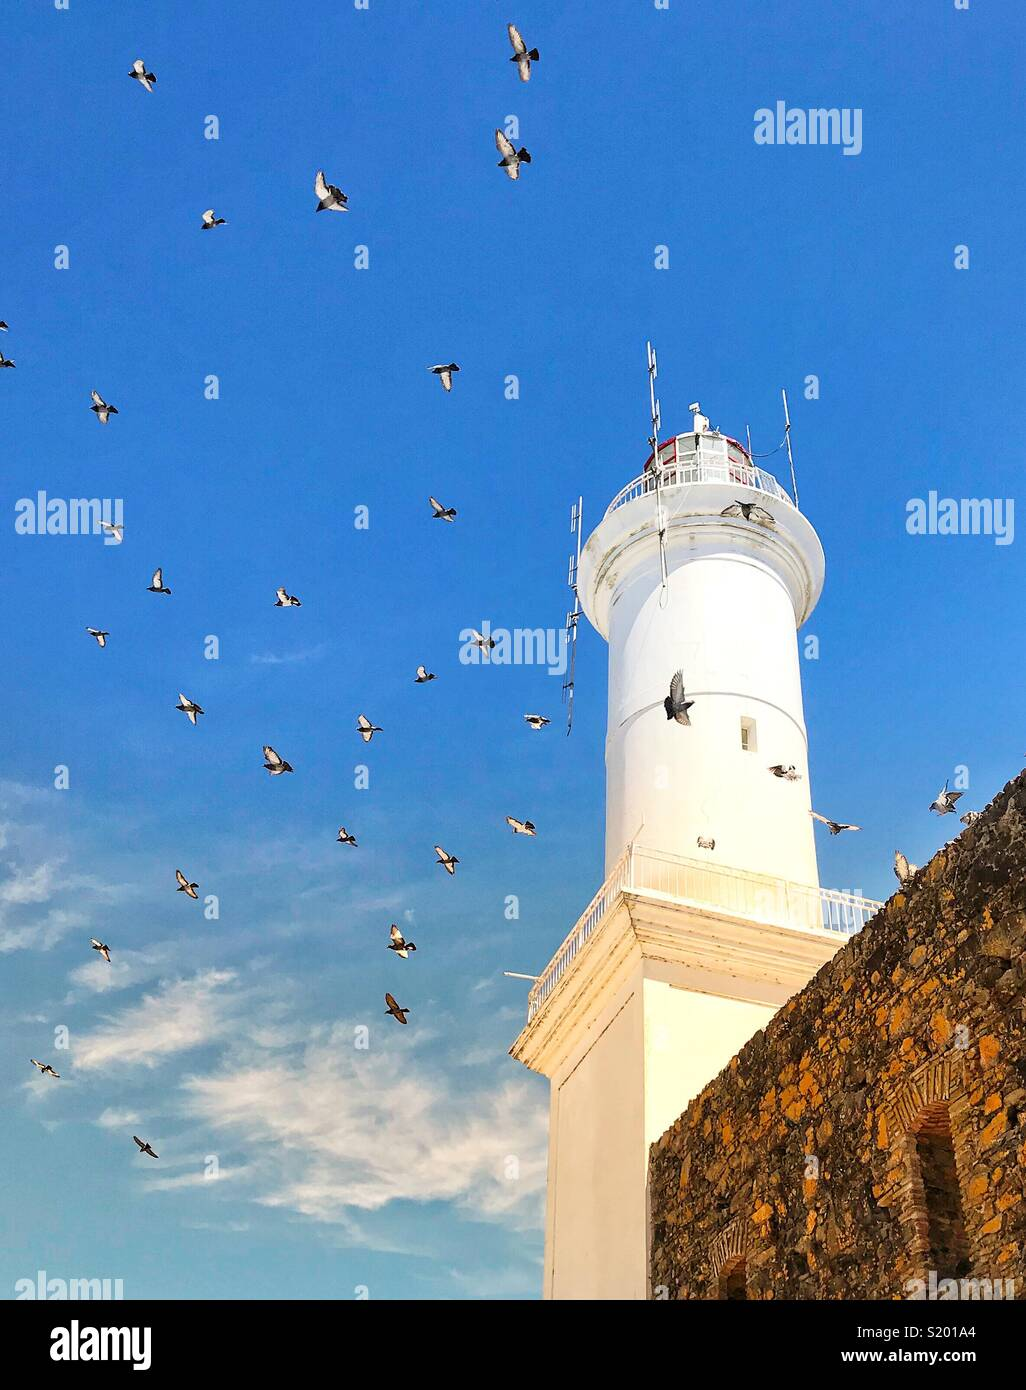 Lighthouse in Colonia, Uruguay - Stock Image